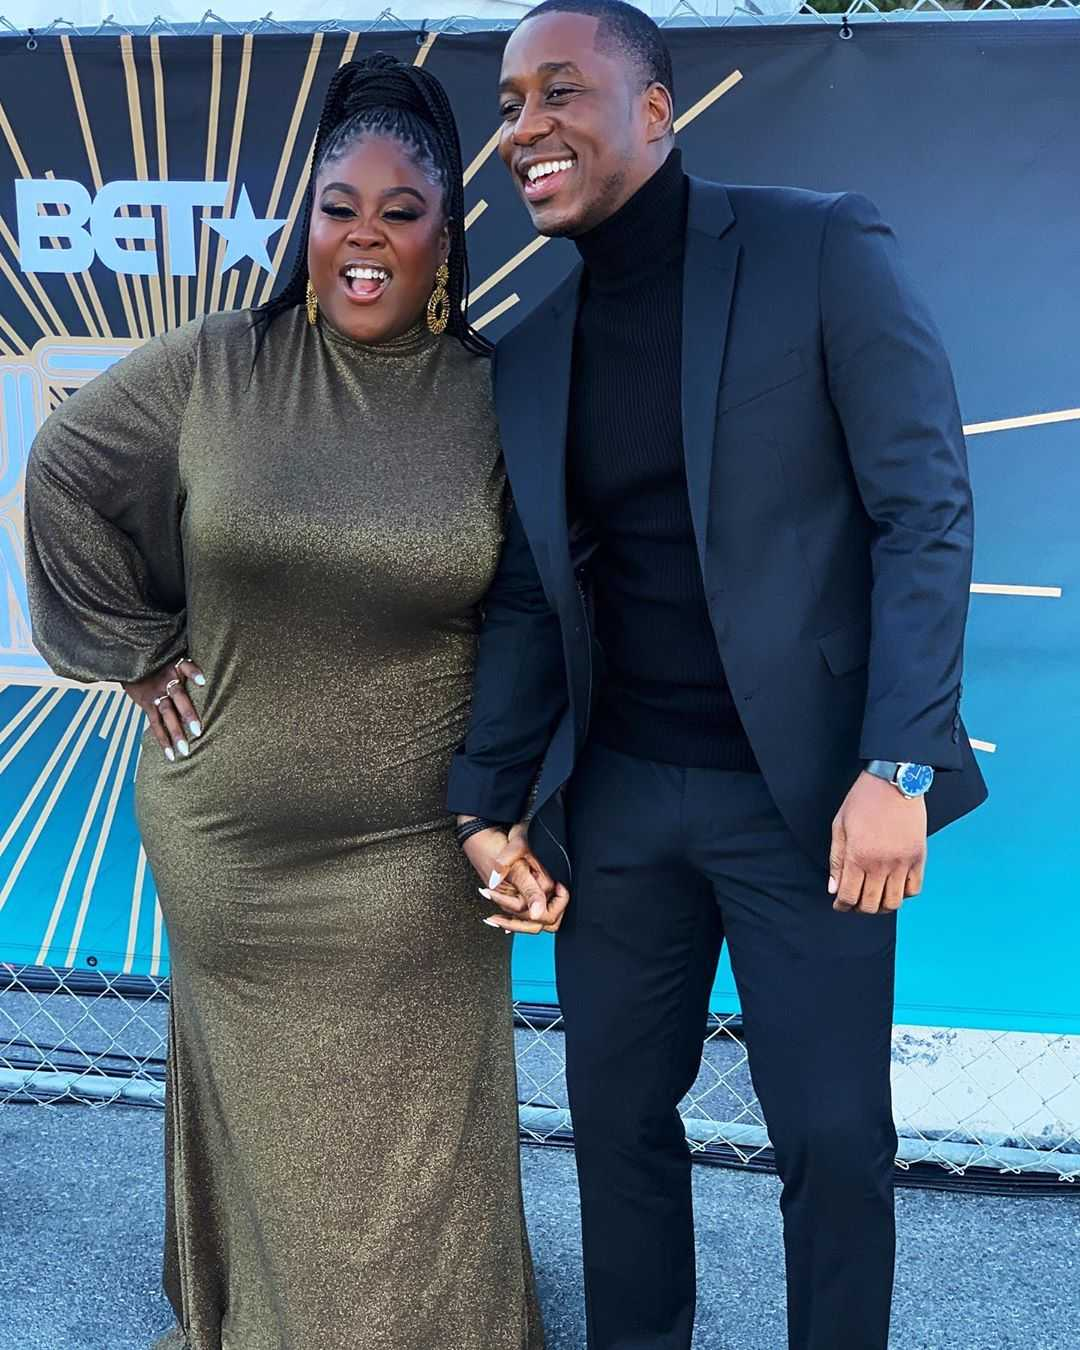 Micah William and Raven Goodwin are Engaged